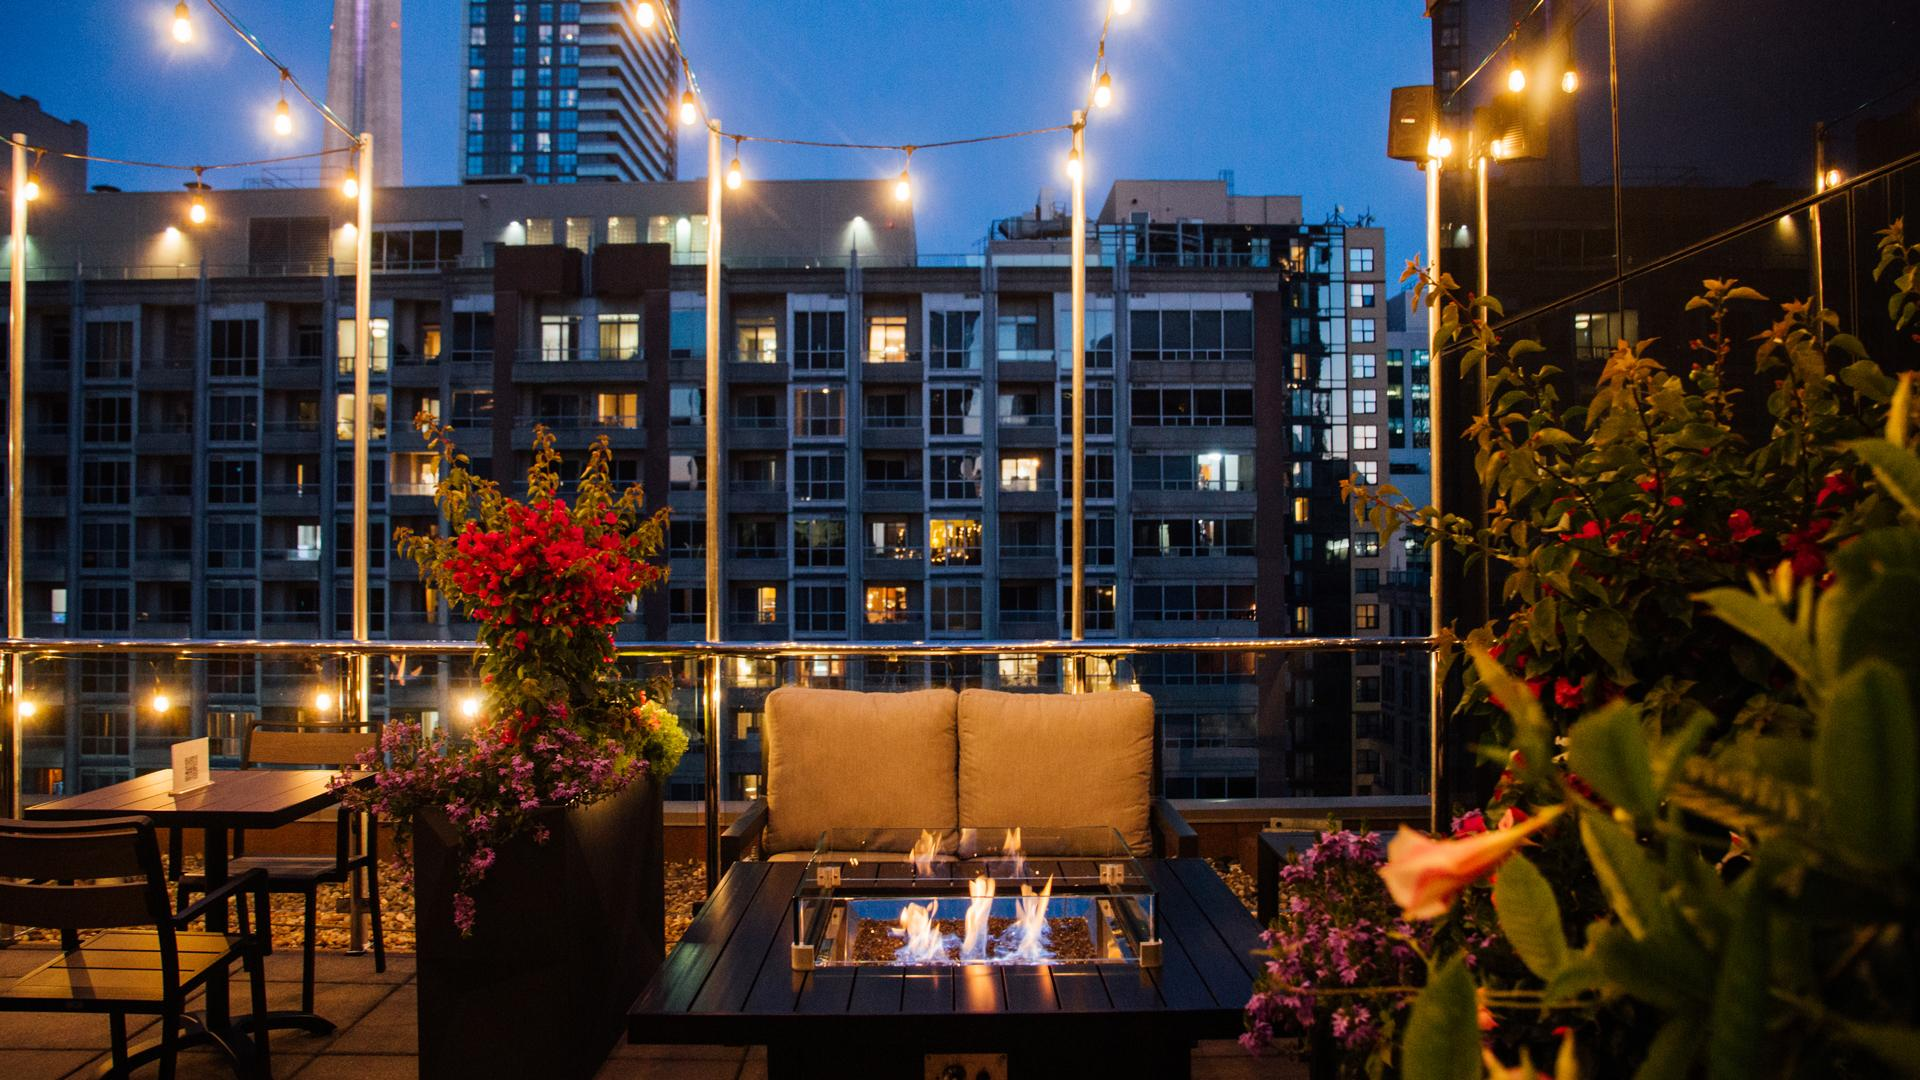 The best rooftop patios in Toronto | A warm fire pit on a cool night at Victor Rooftop Terrace